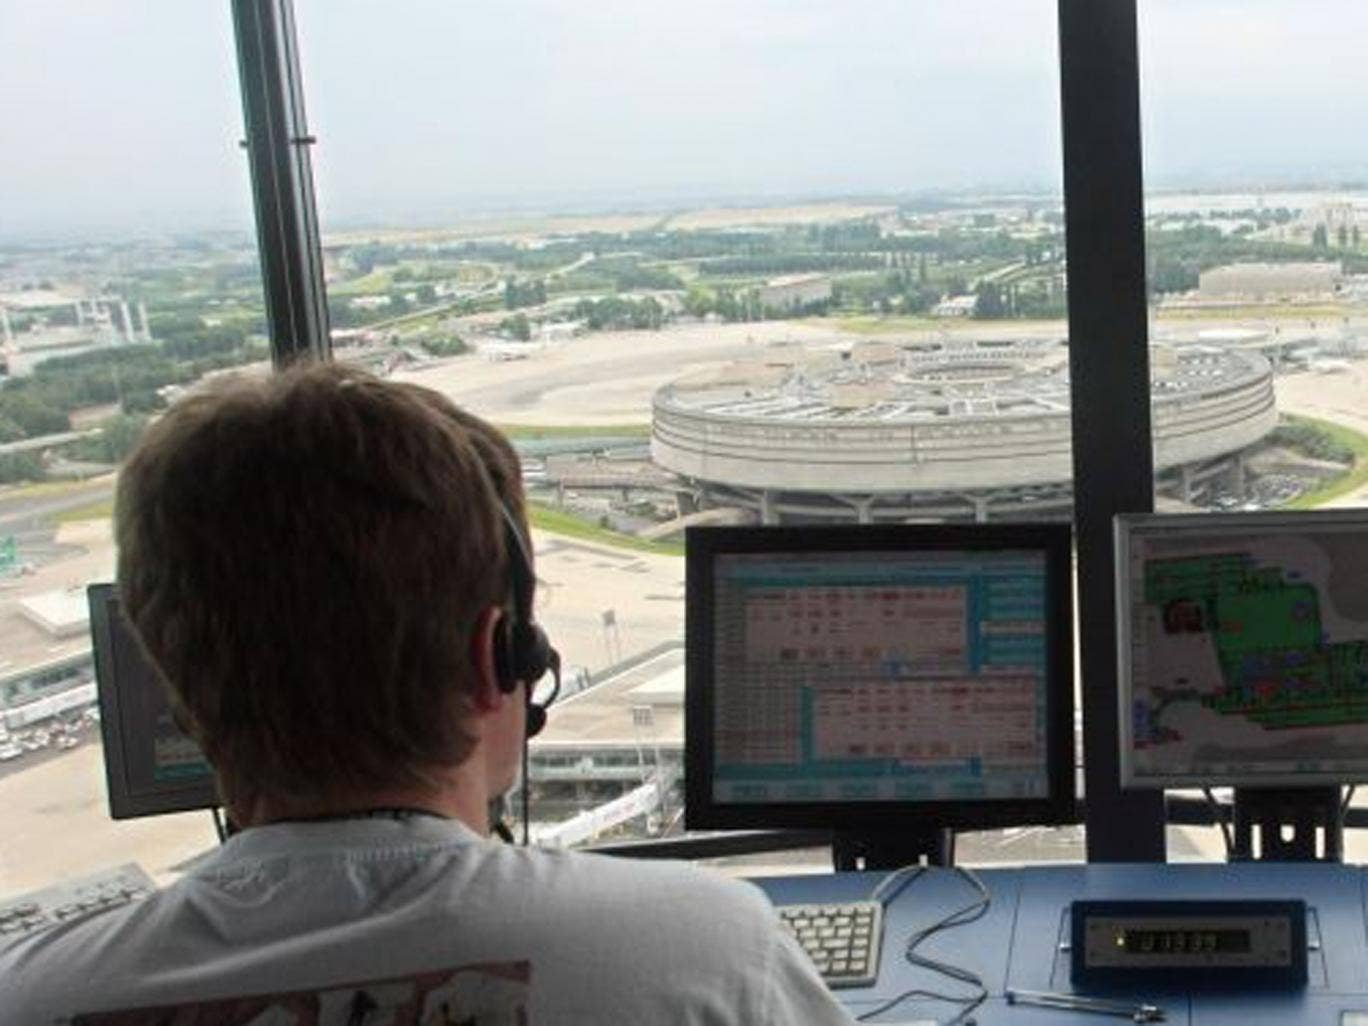 An air traffic controller at the Roissy Charles de Gaulle airport's control tower, in Roissy-en-France, northern Paris. Air traffic controllers plan three days of strikes beginning 11 June 2013